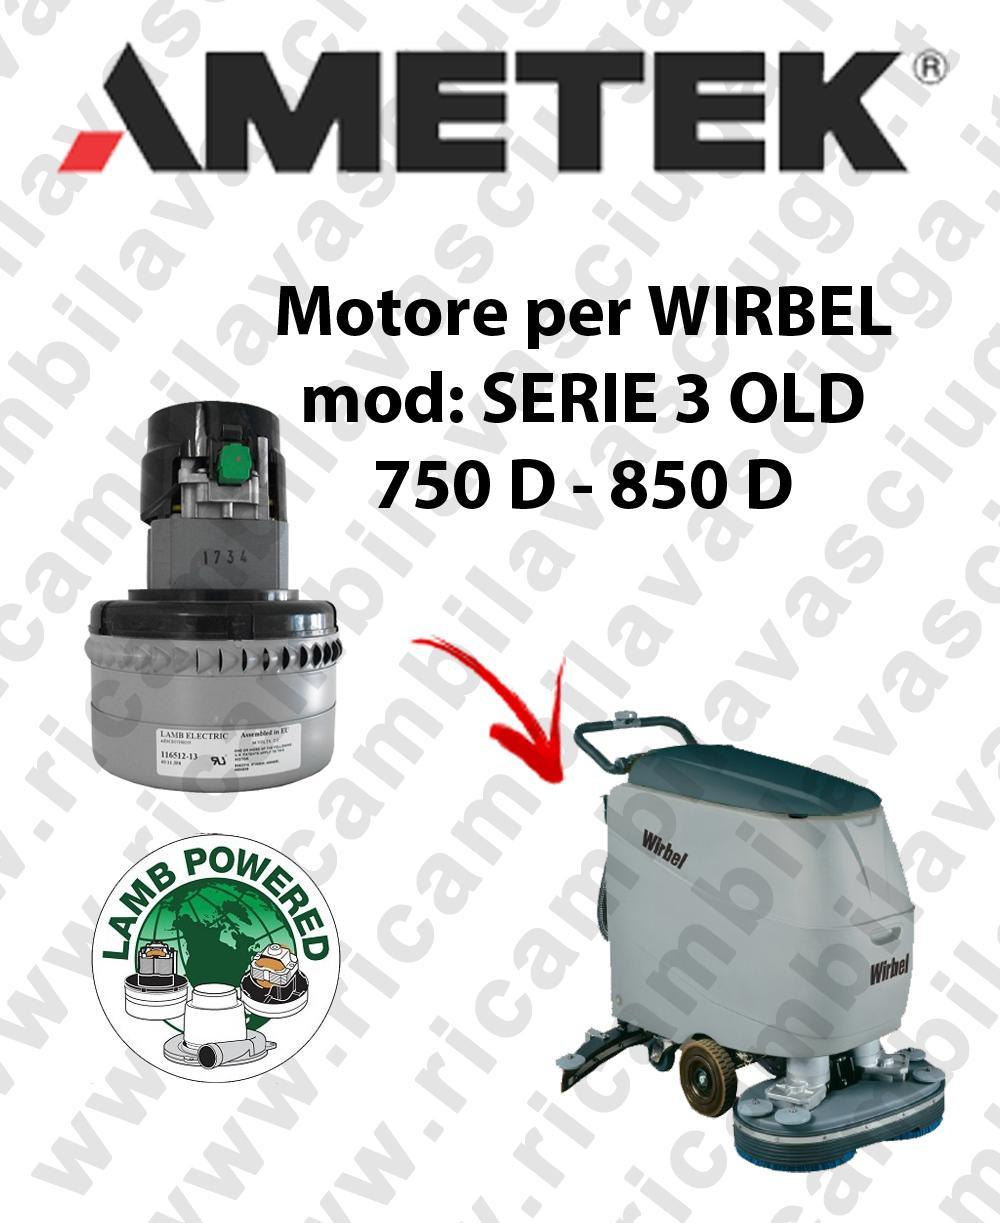 SERIE 3 OLD 750 D - 850 D LAMB AMETEK vacuum motor for scrubber dryer WIRBEL